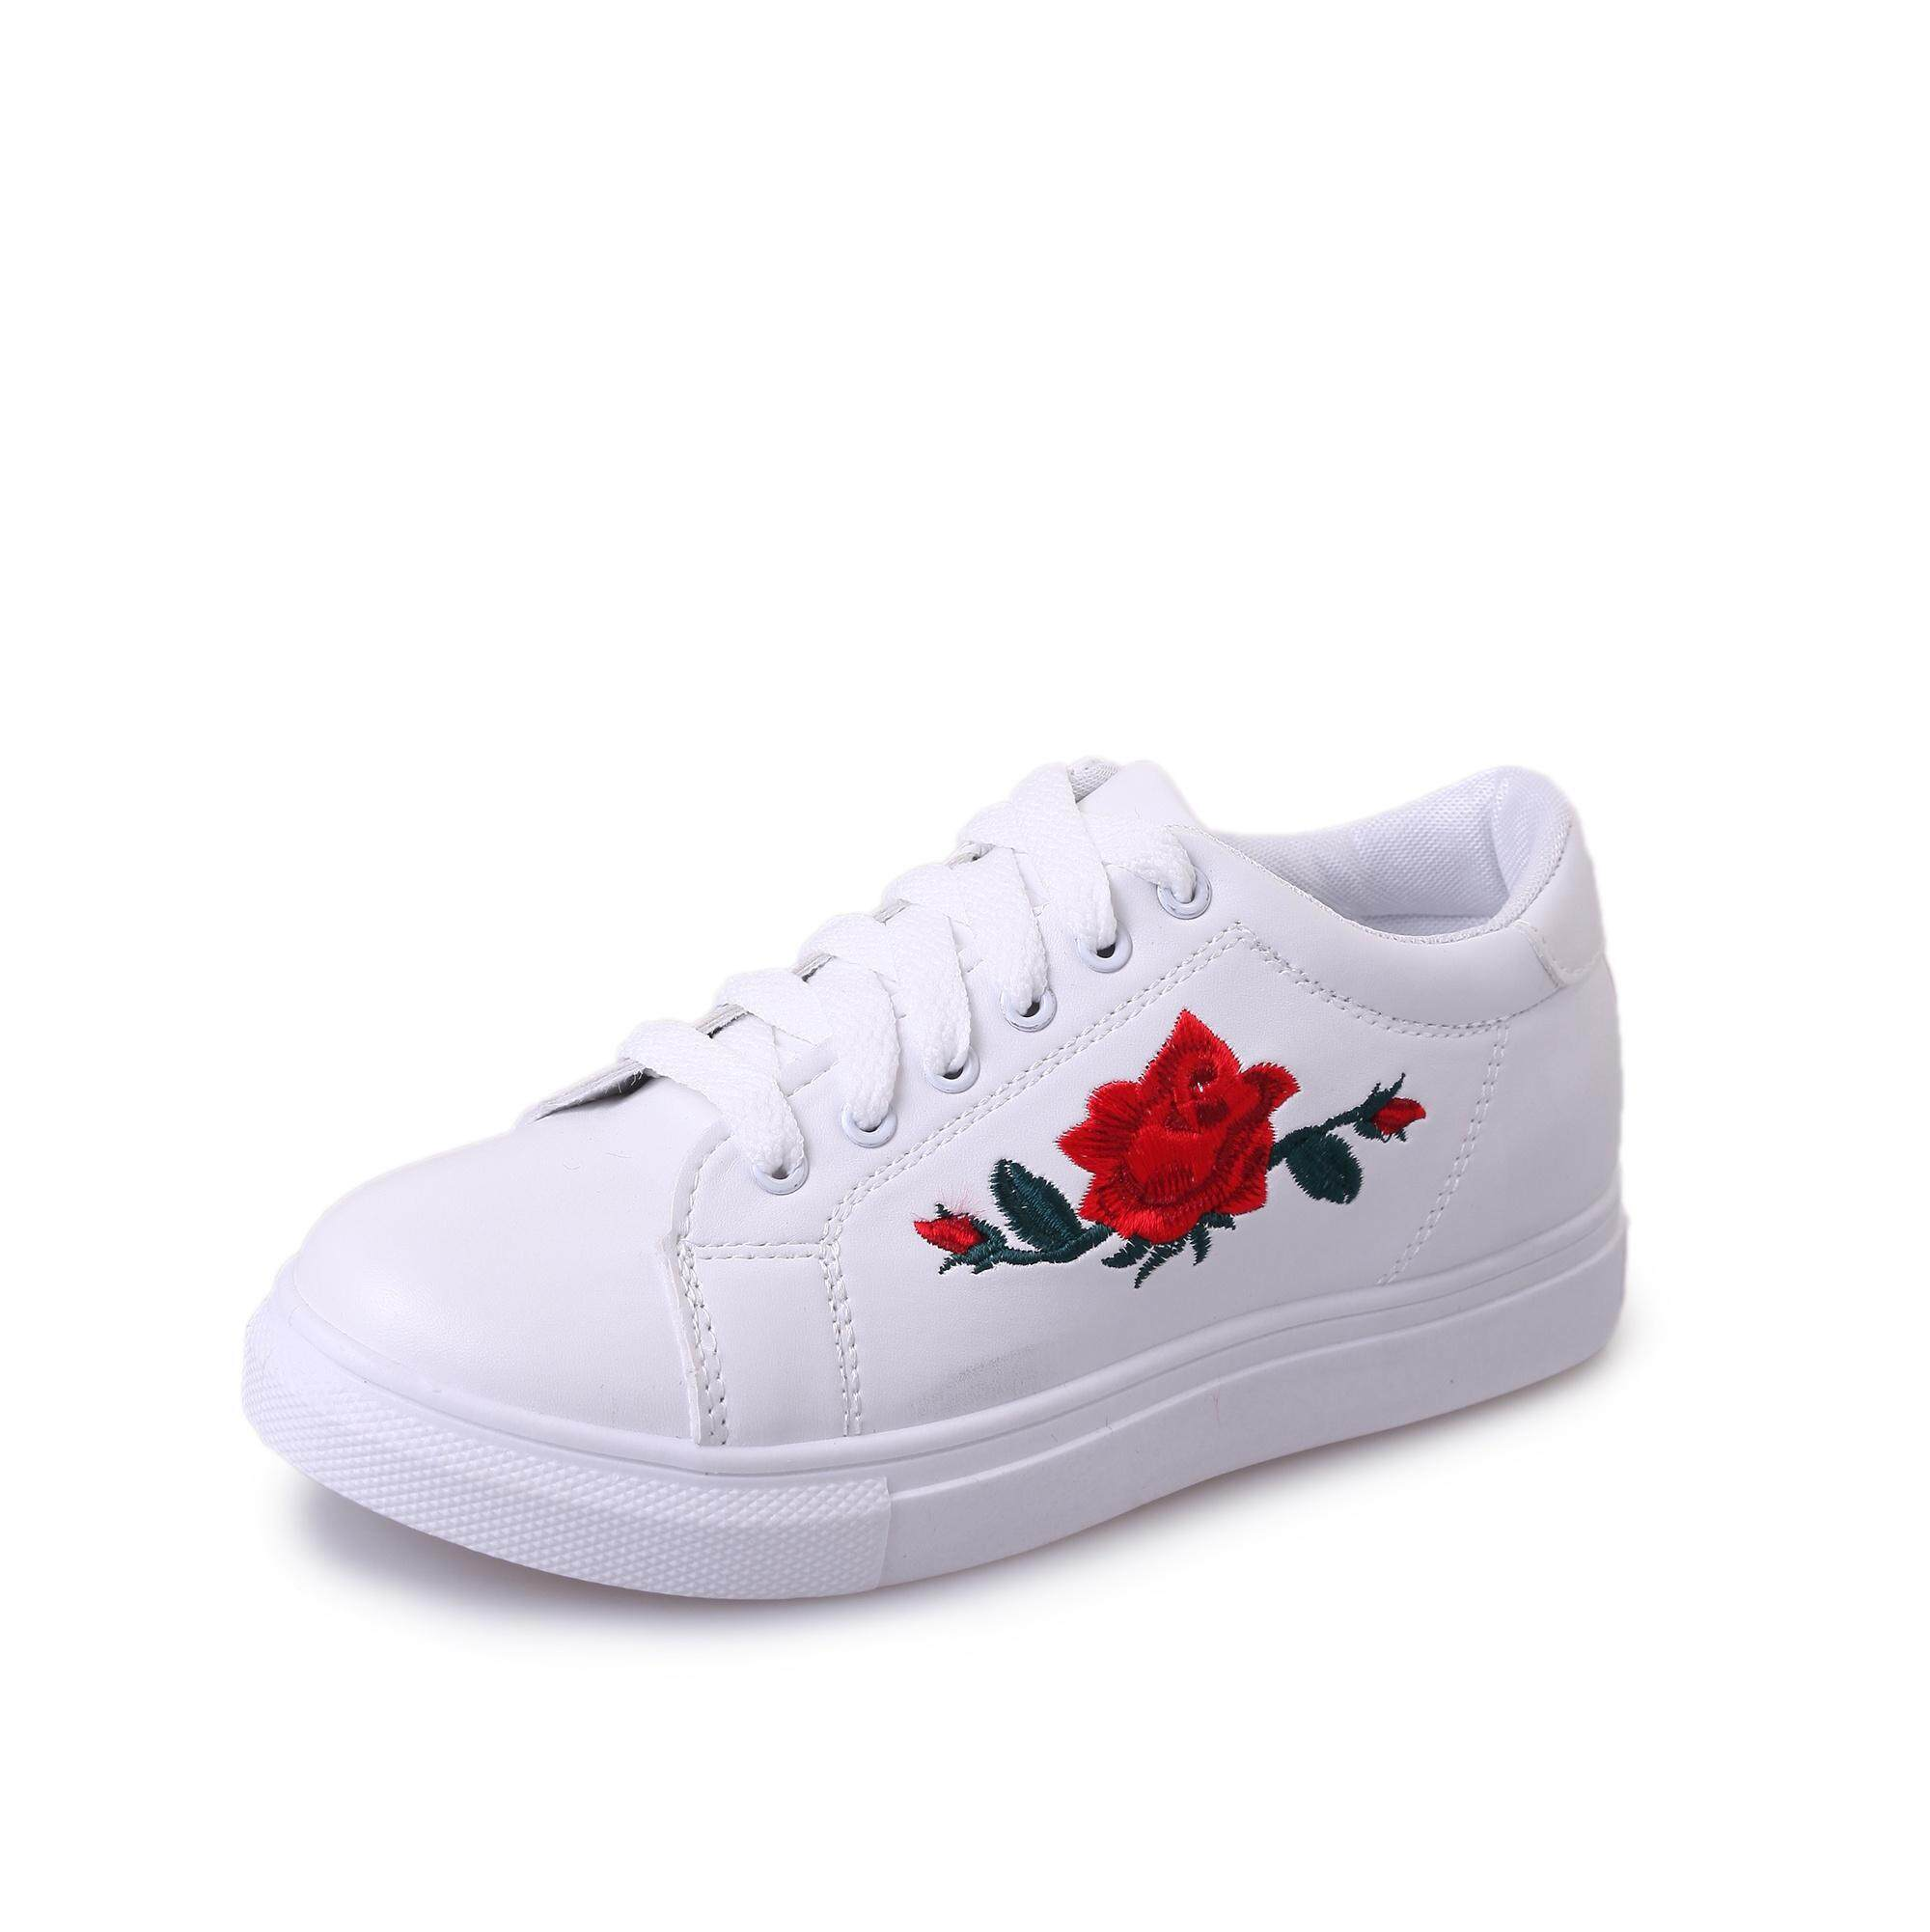 74567af8e9 1015 (70 B2) Rose Embroidery Sneakers Casual Women Flat Shoes (FREE GIFT  WITH